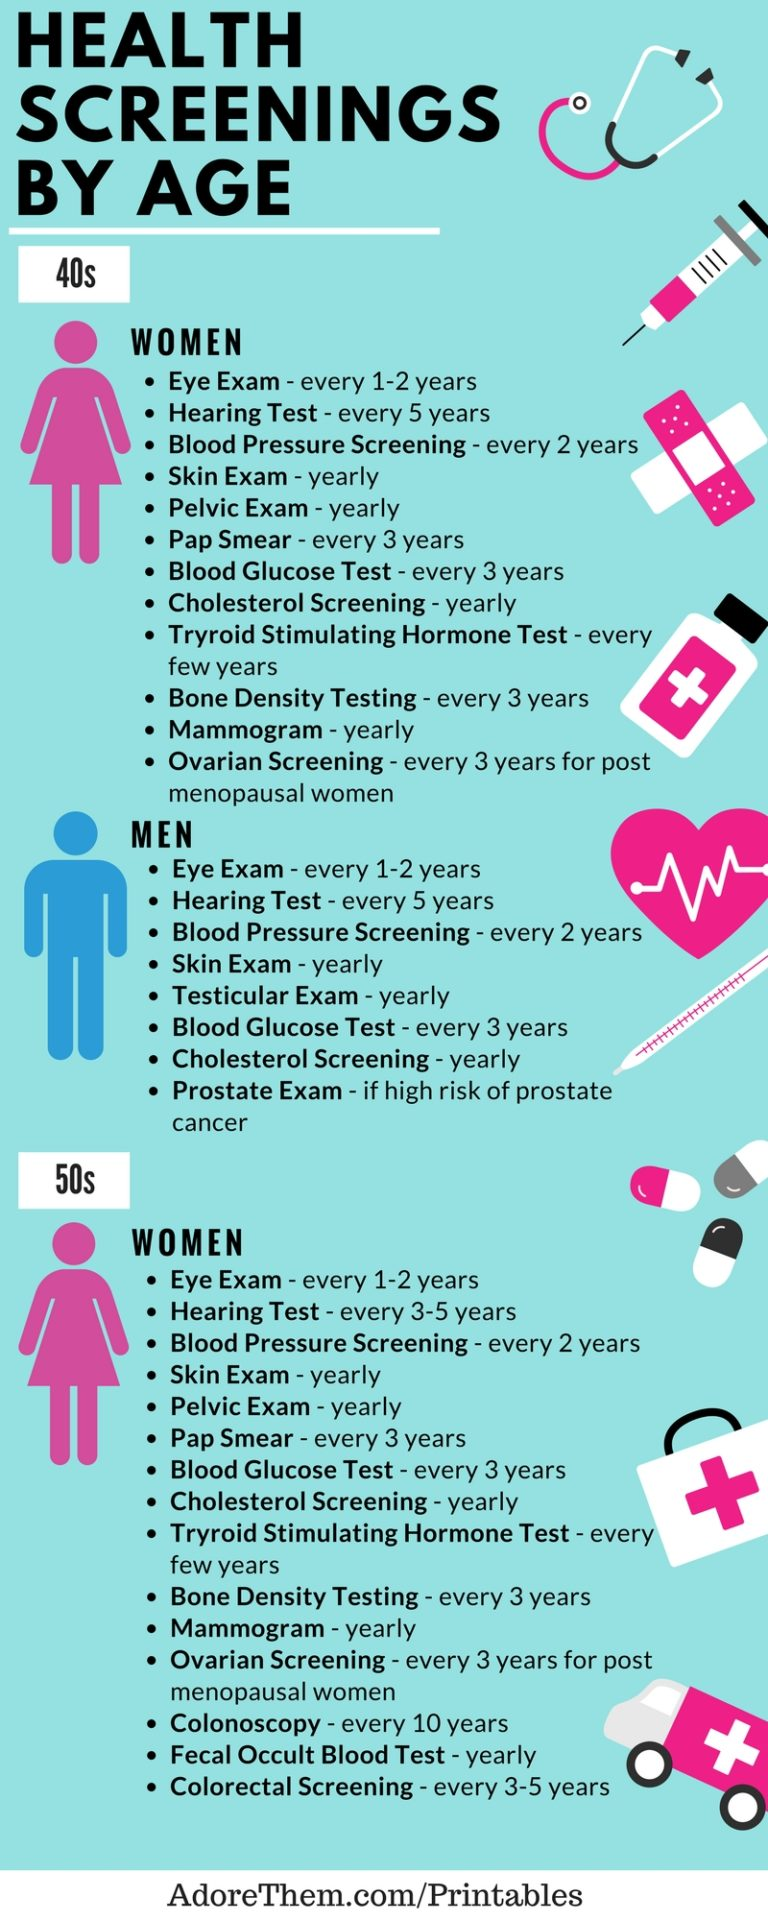 Health Screening By Age